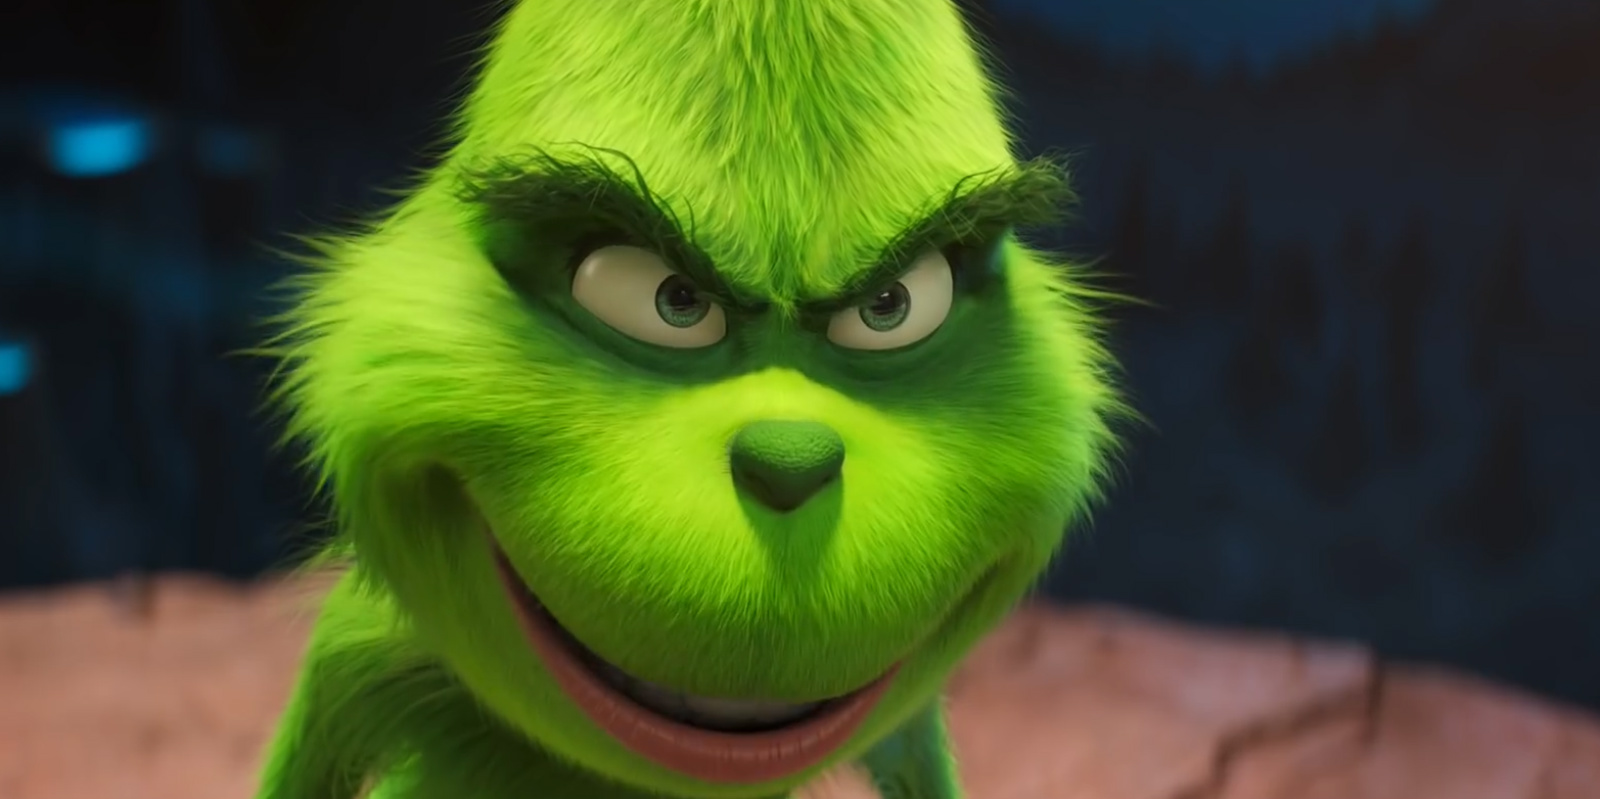 The Grinch Finally Steals Christmas in Latest Trailer